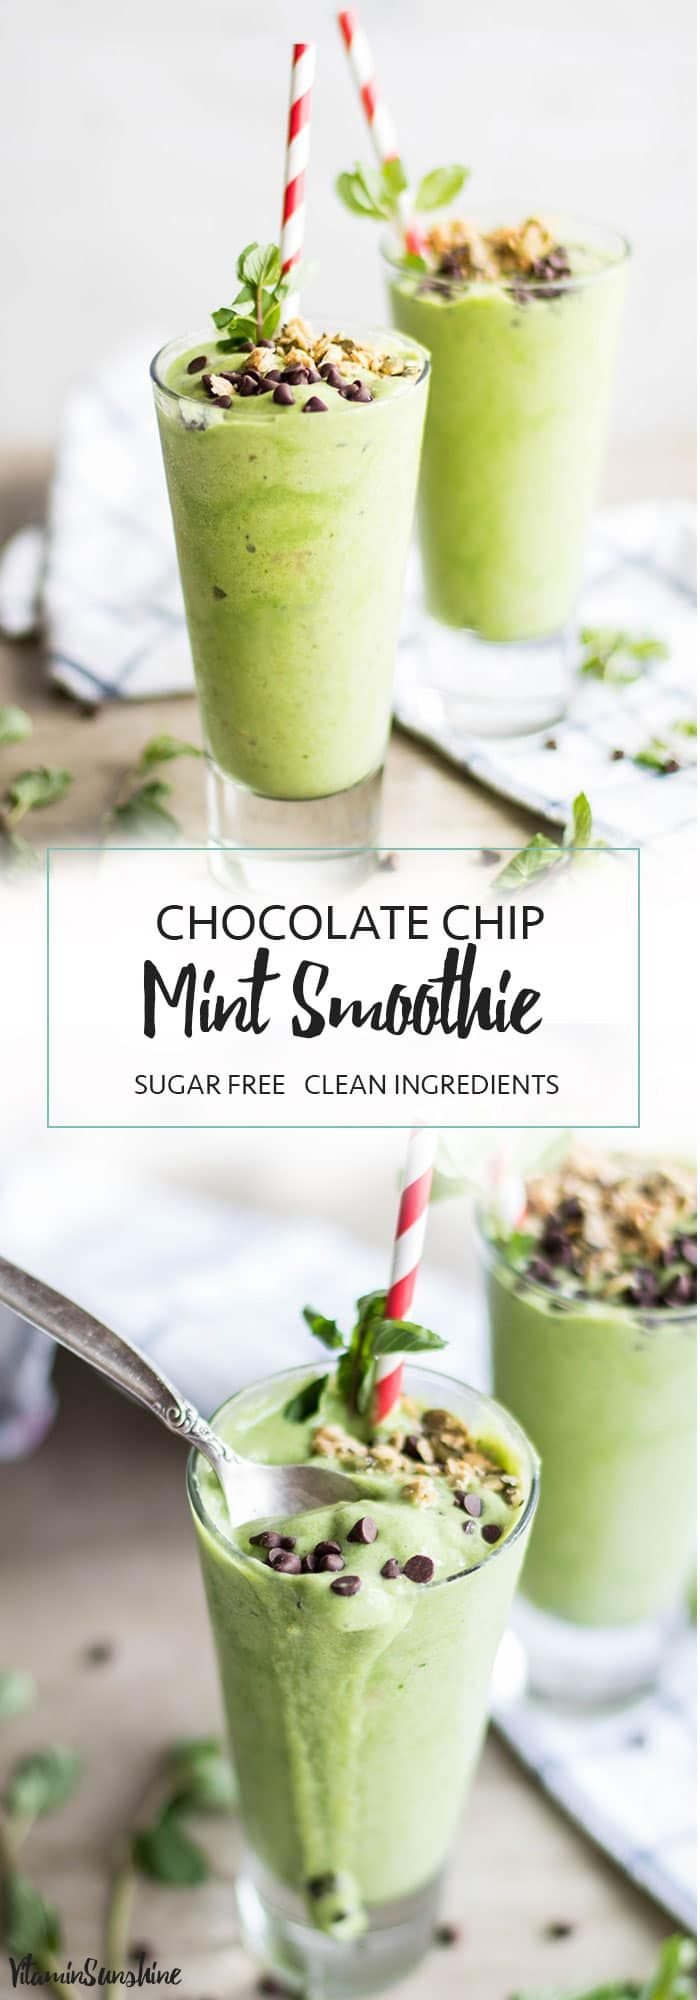 A Pinterest Image featuring two glasses of the healthy chocolate chip mint smoothie.